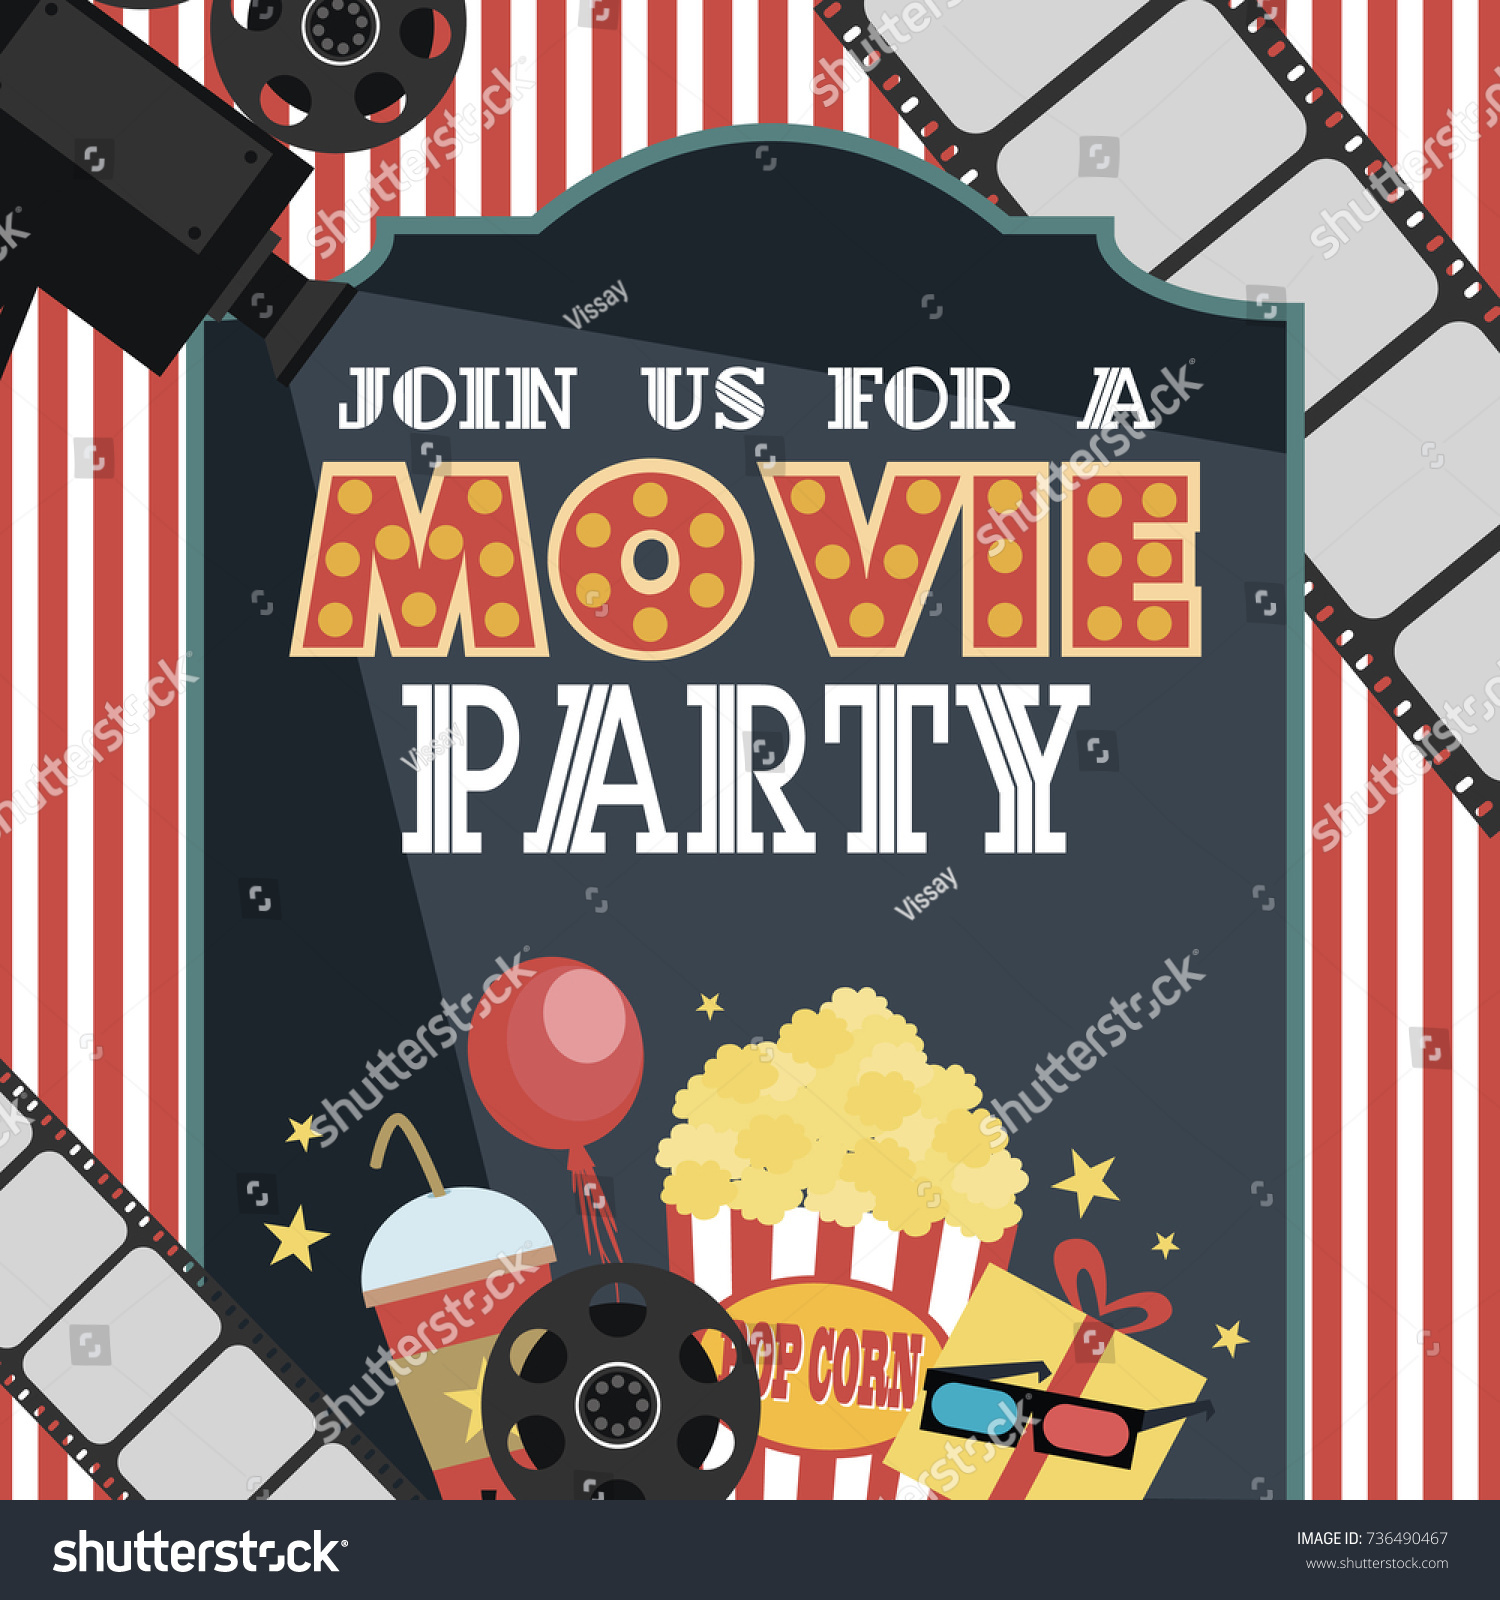 movie party invitation - Military.bralicious.co